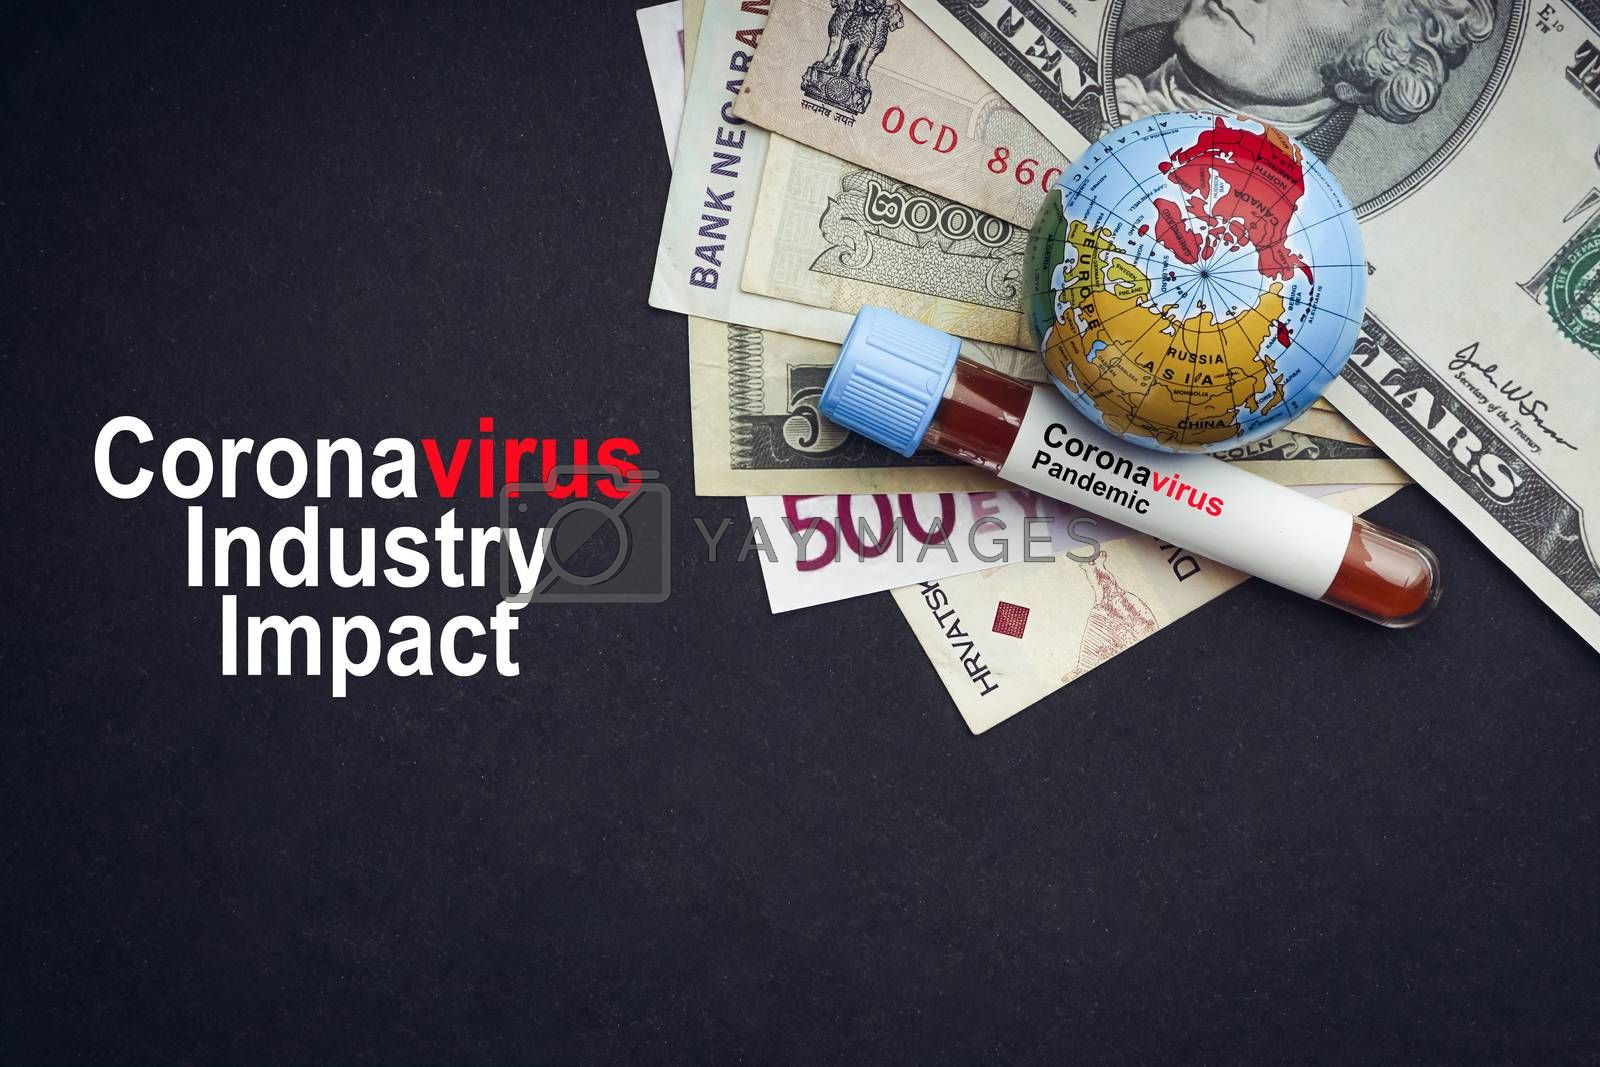 CORONAVIRUS INDUSTRY IMPACT text with currency banknotes, world globe and blood test vacuum tube on black background. Covid-19 or Coronavirus Concept